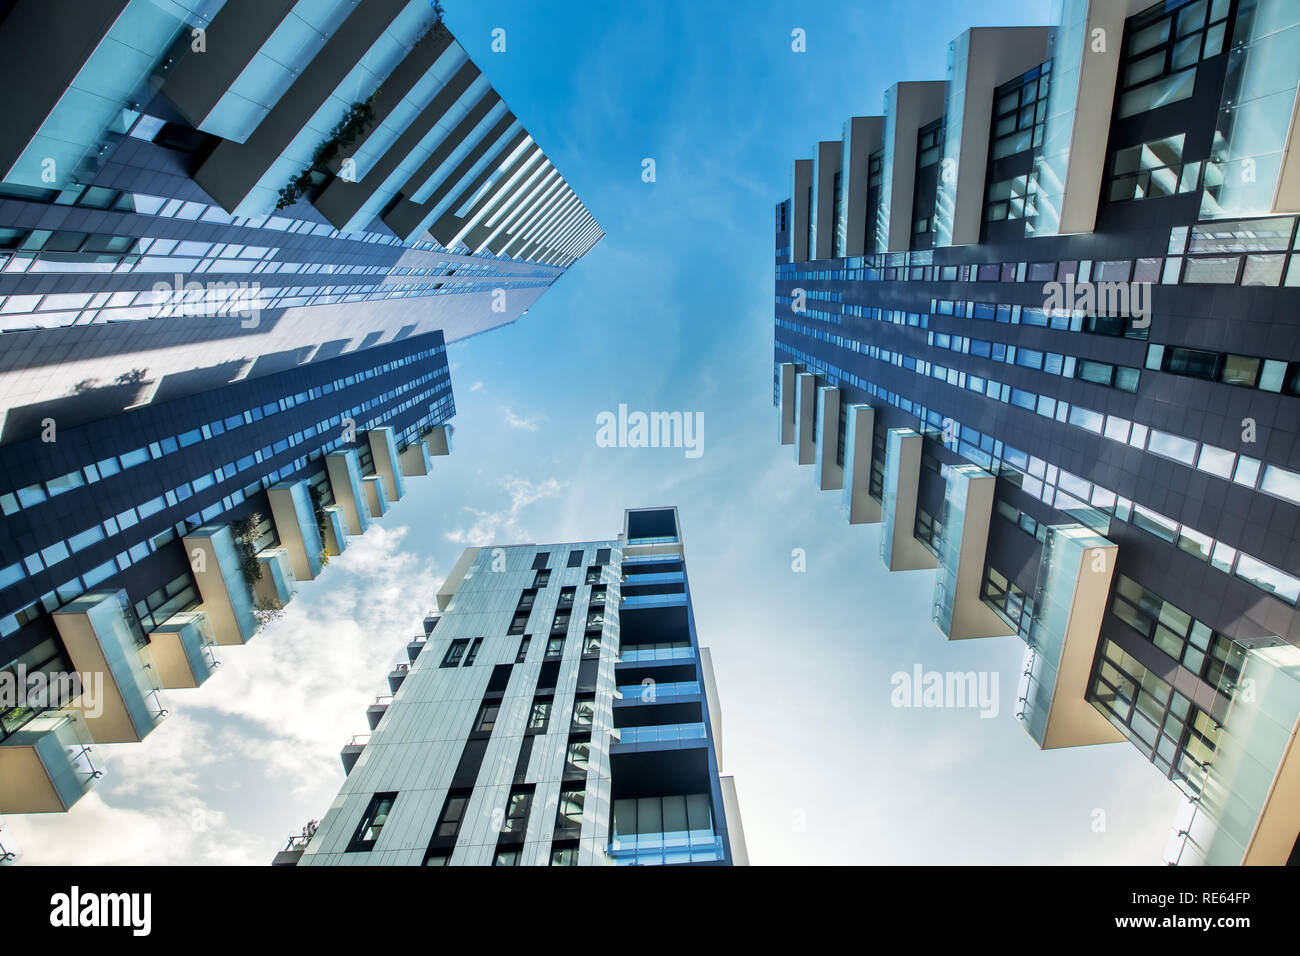 Low perspective view of modern Milan apartment blocks with large balconies looking up from below as they converge against a blue sky - Stock Image